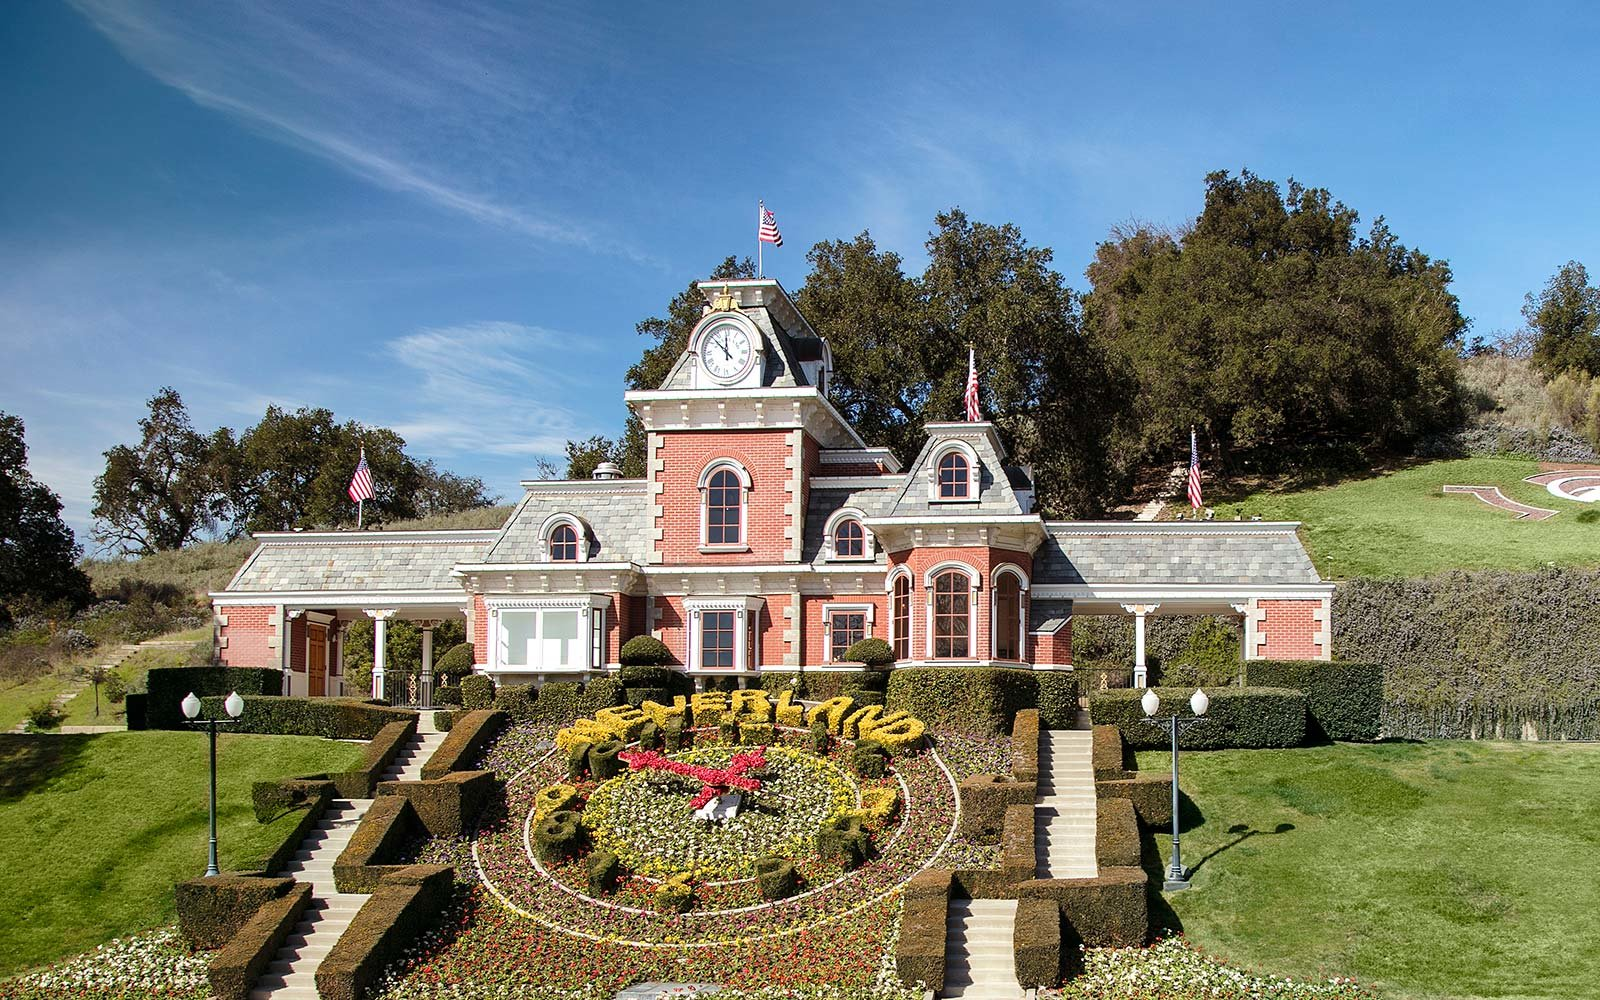 entry-topiary-neverland-ranch-NEVERLAND0317.jpg